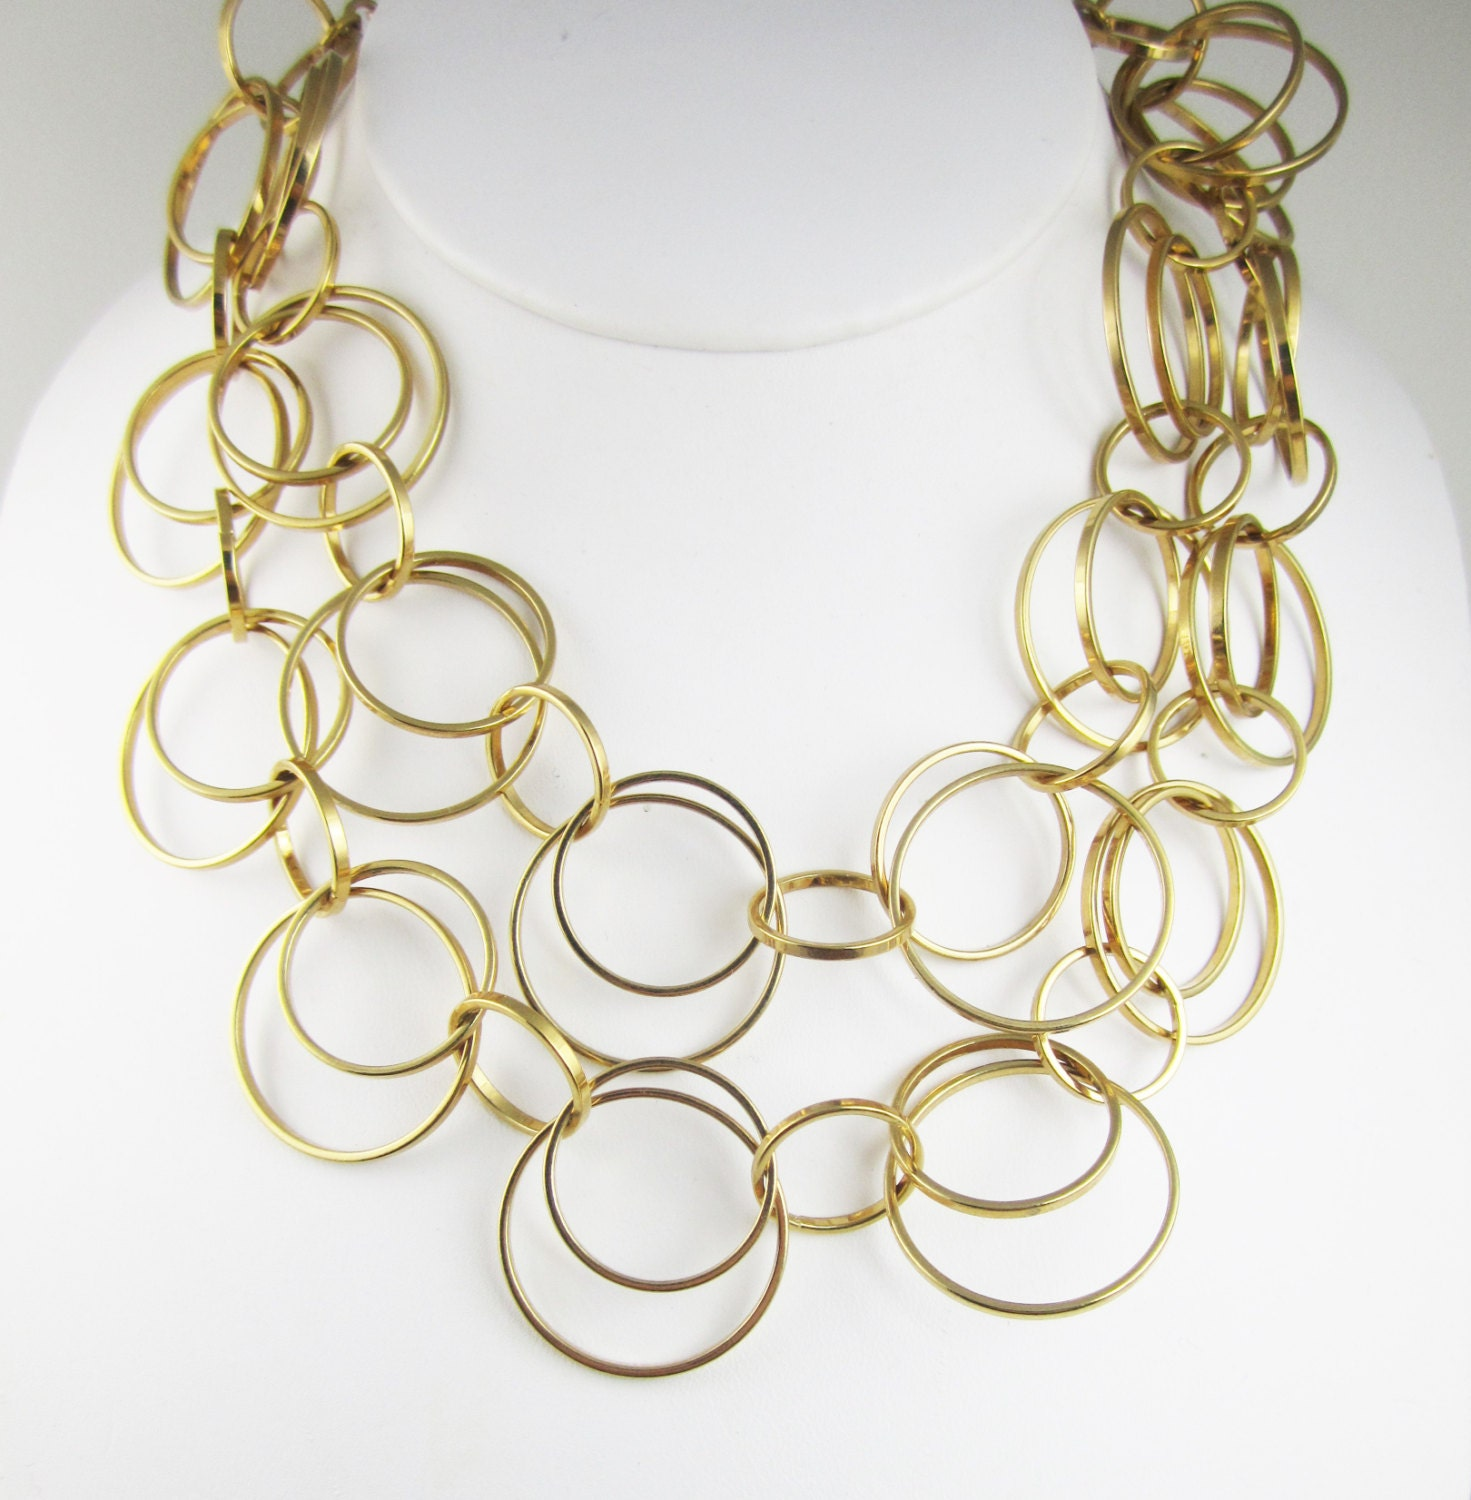 Signed joan rivers necklace layered circles by for Joan rivers jewelry necklaces